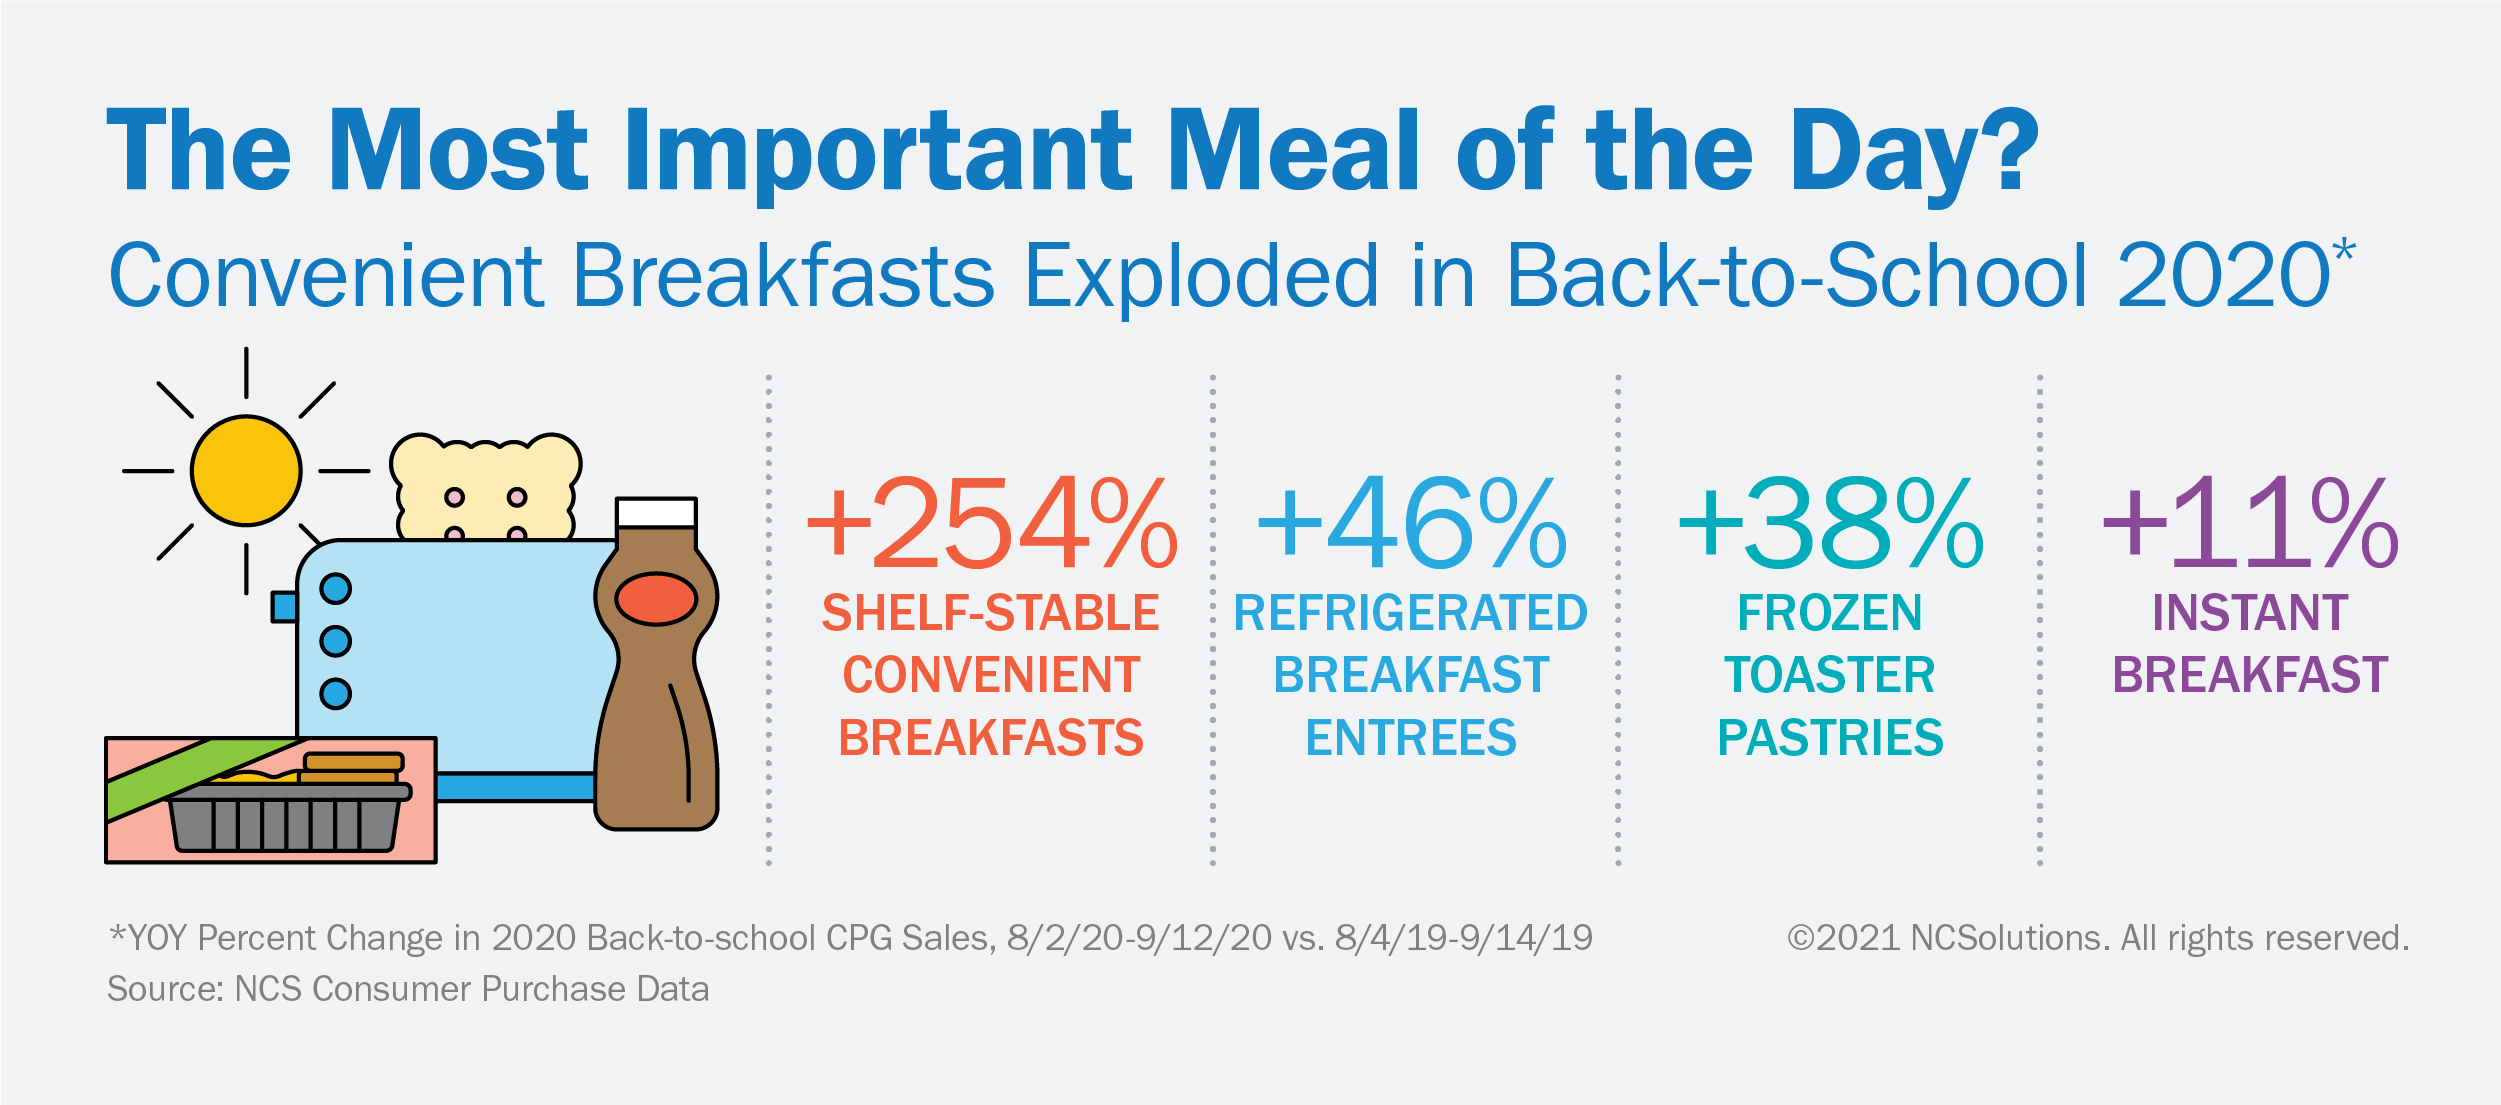 Convenient breakfast purchases increased in back-to-school 2020